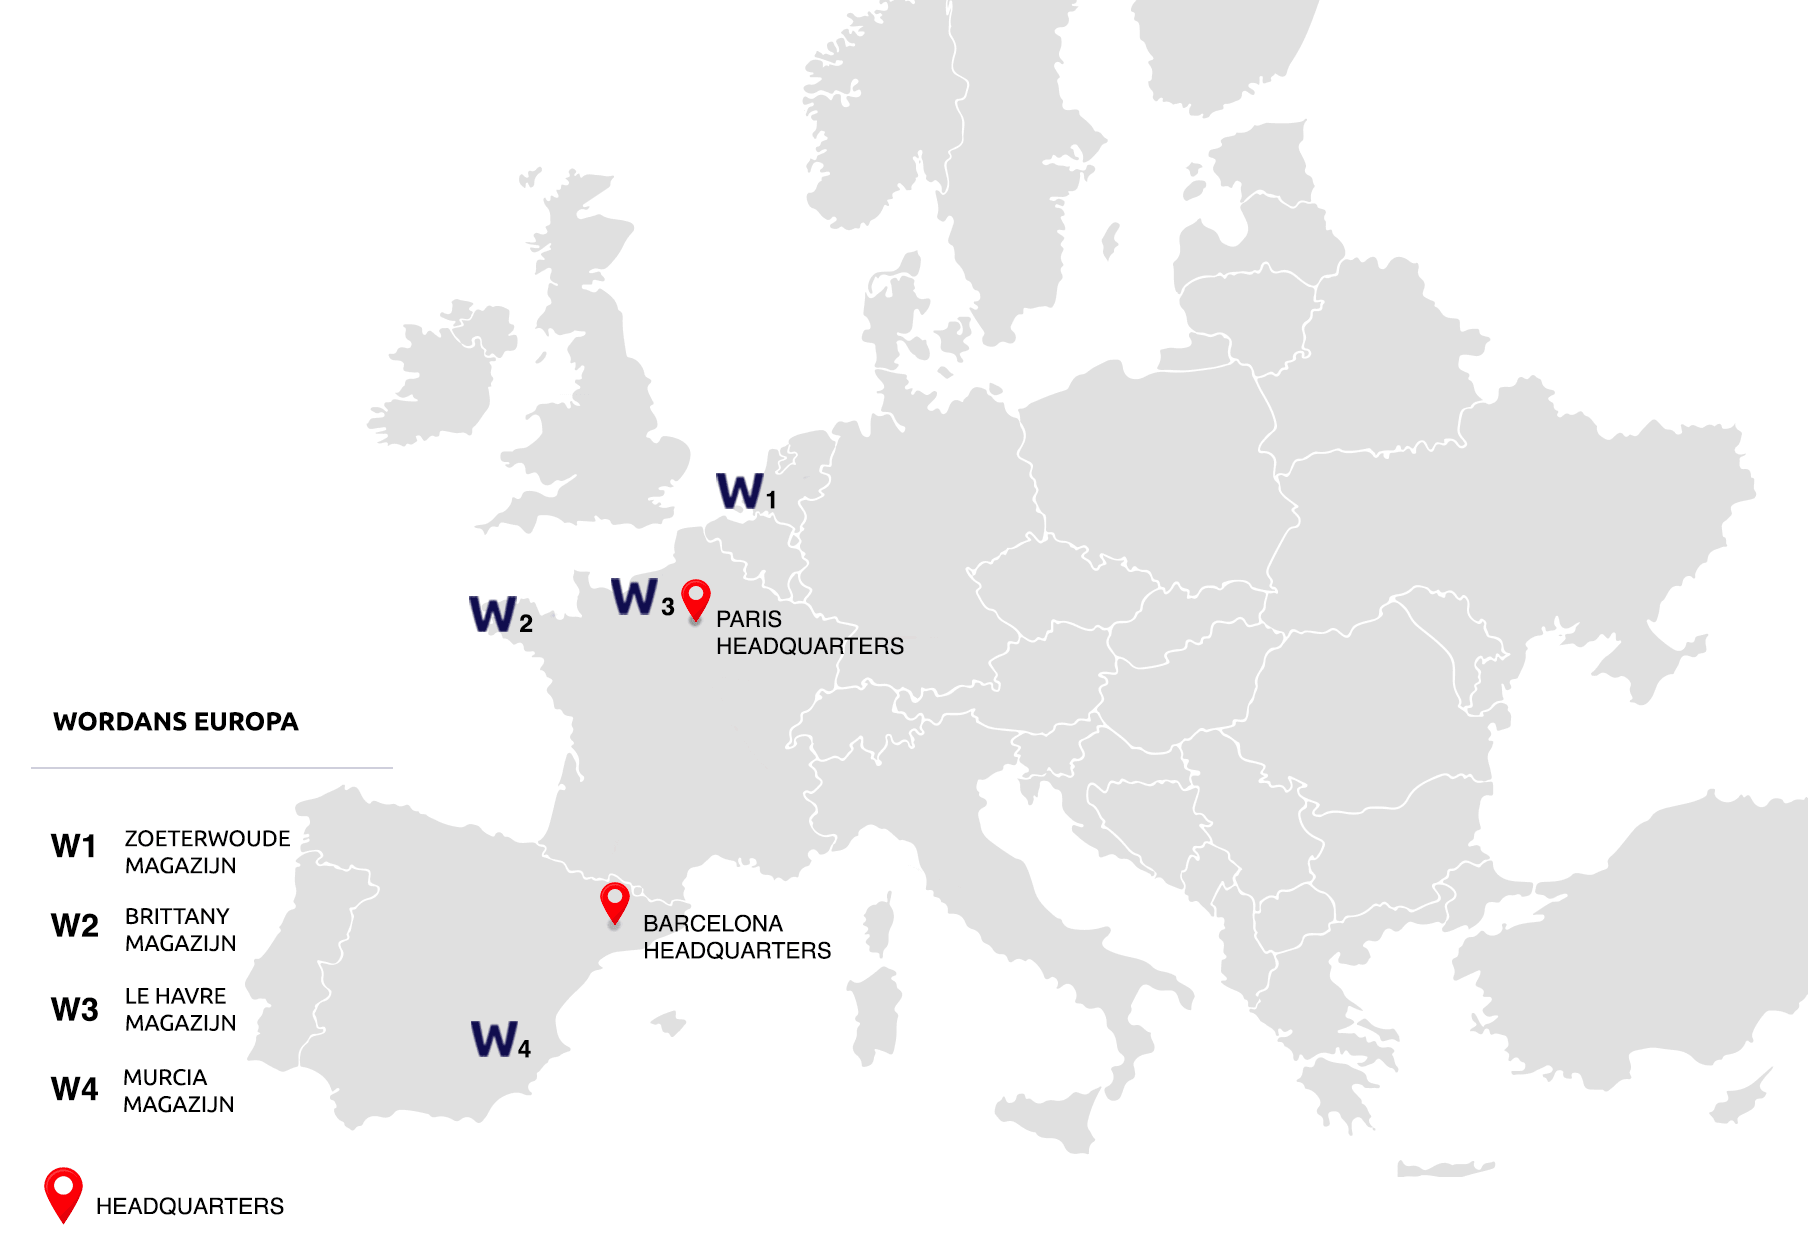 Map of warehouses